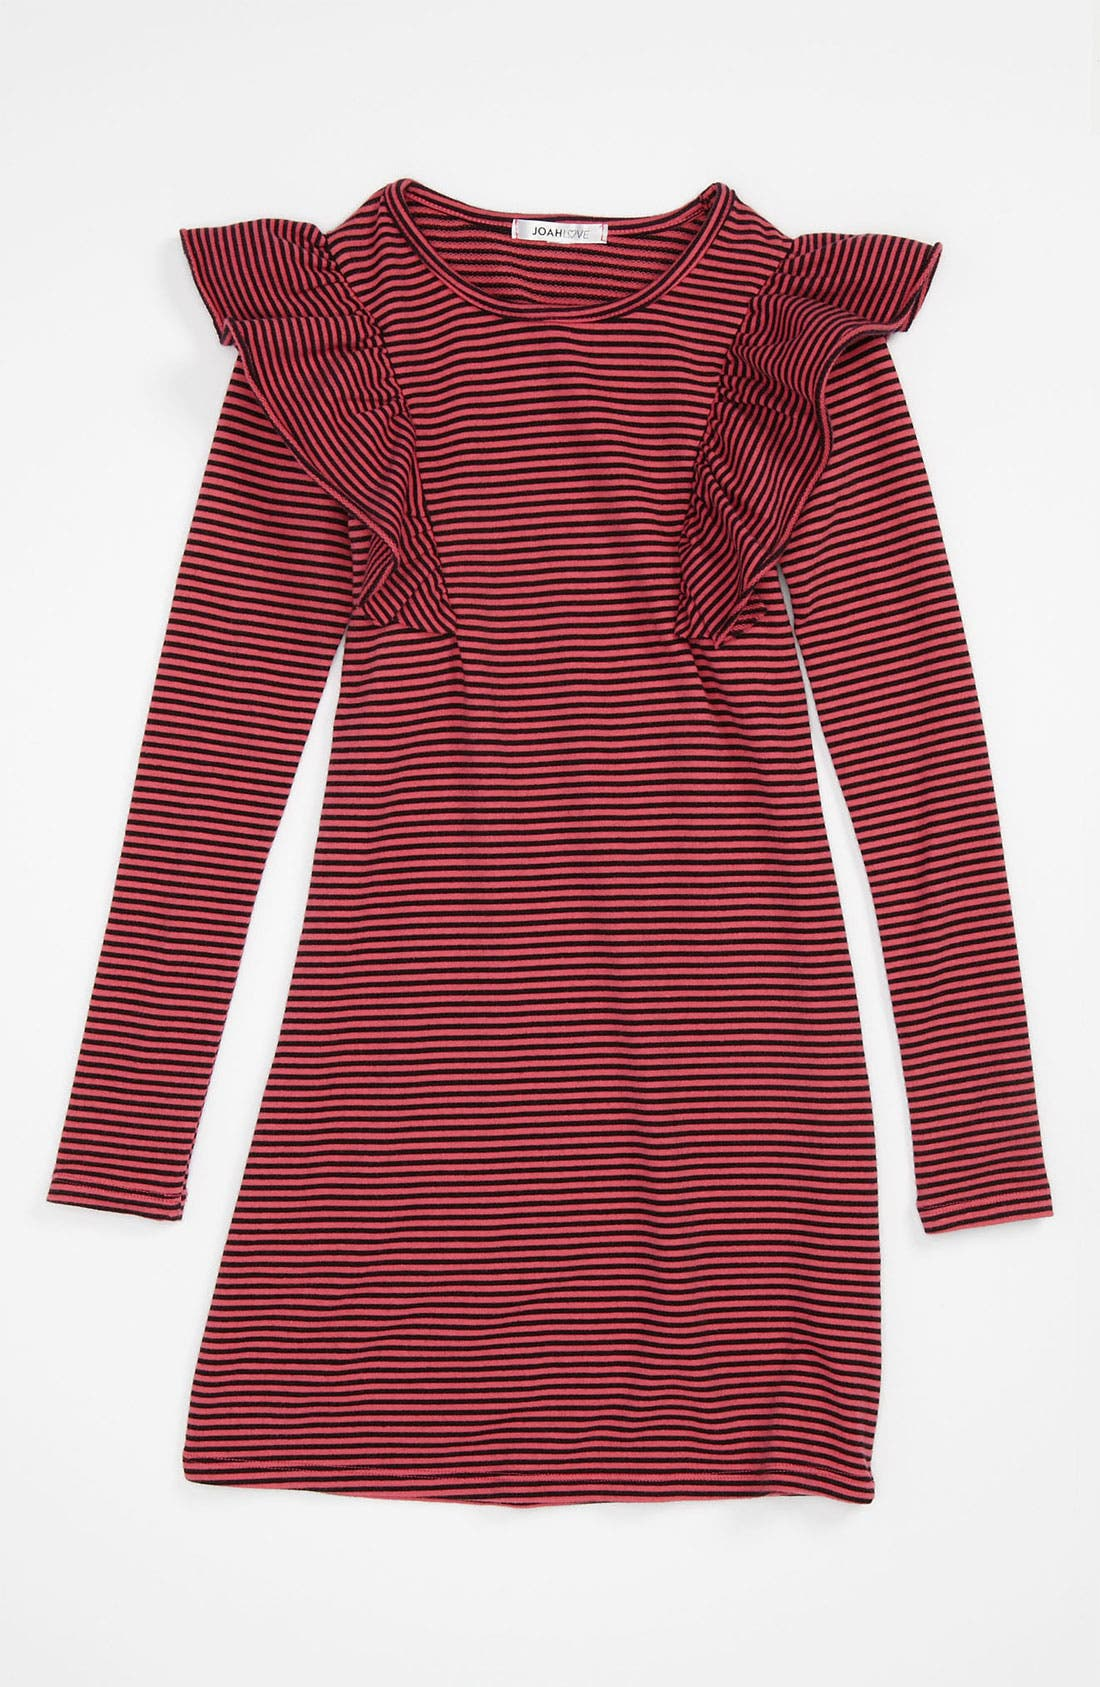 Alternate Image 1 Selected - Joah Love Stripe Mod Dress (Little Girls & Big Girls)